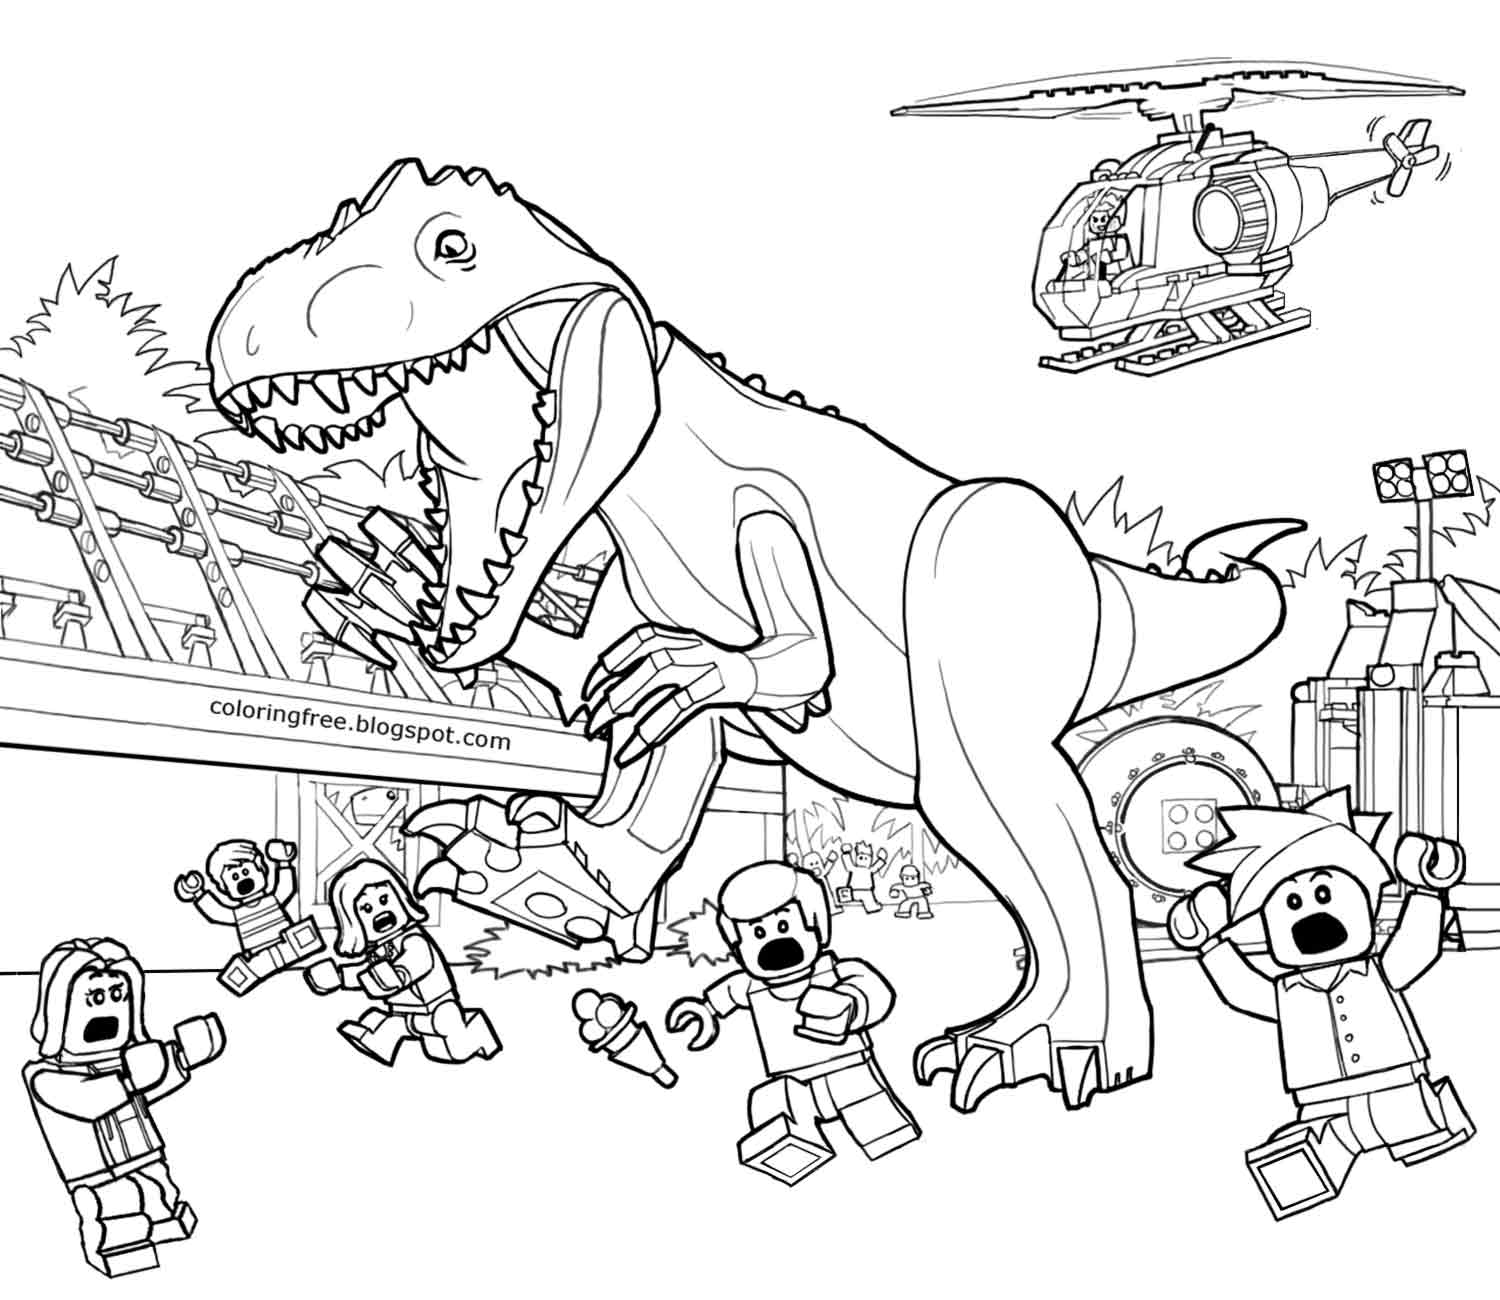 Dinosaur Coloring Pages For Kids Coloring Pages Of Real Dinosaurs